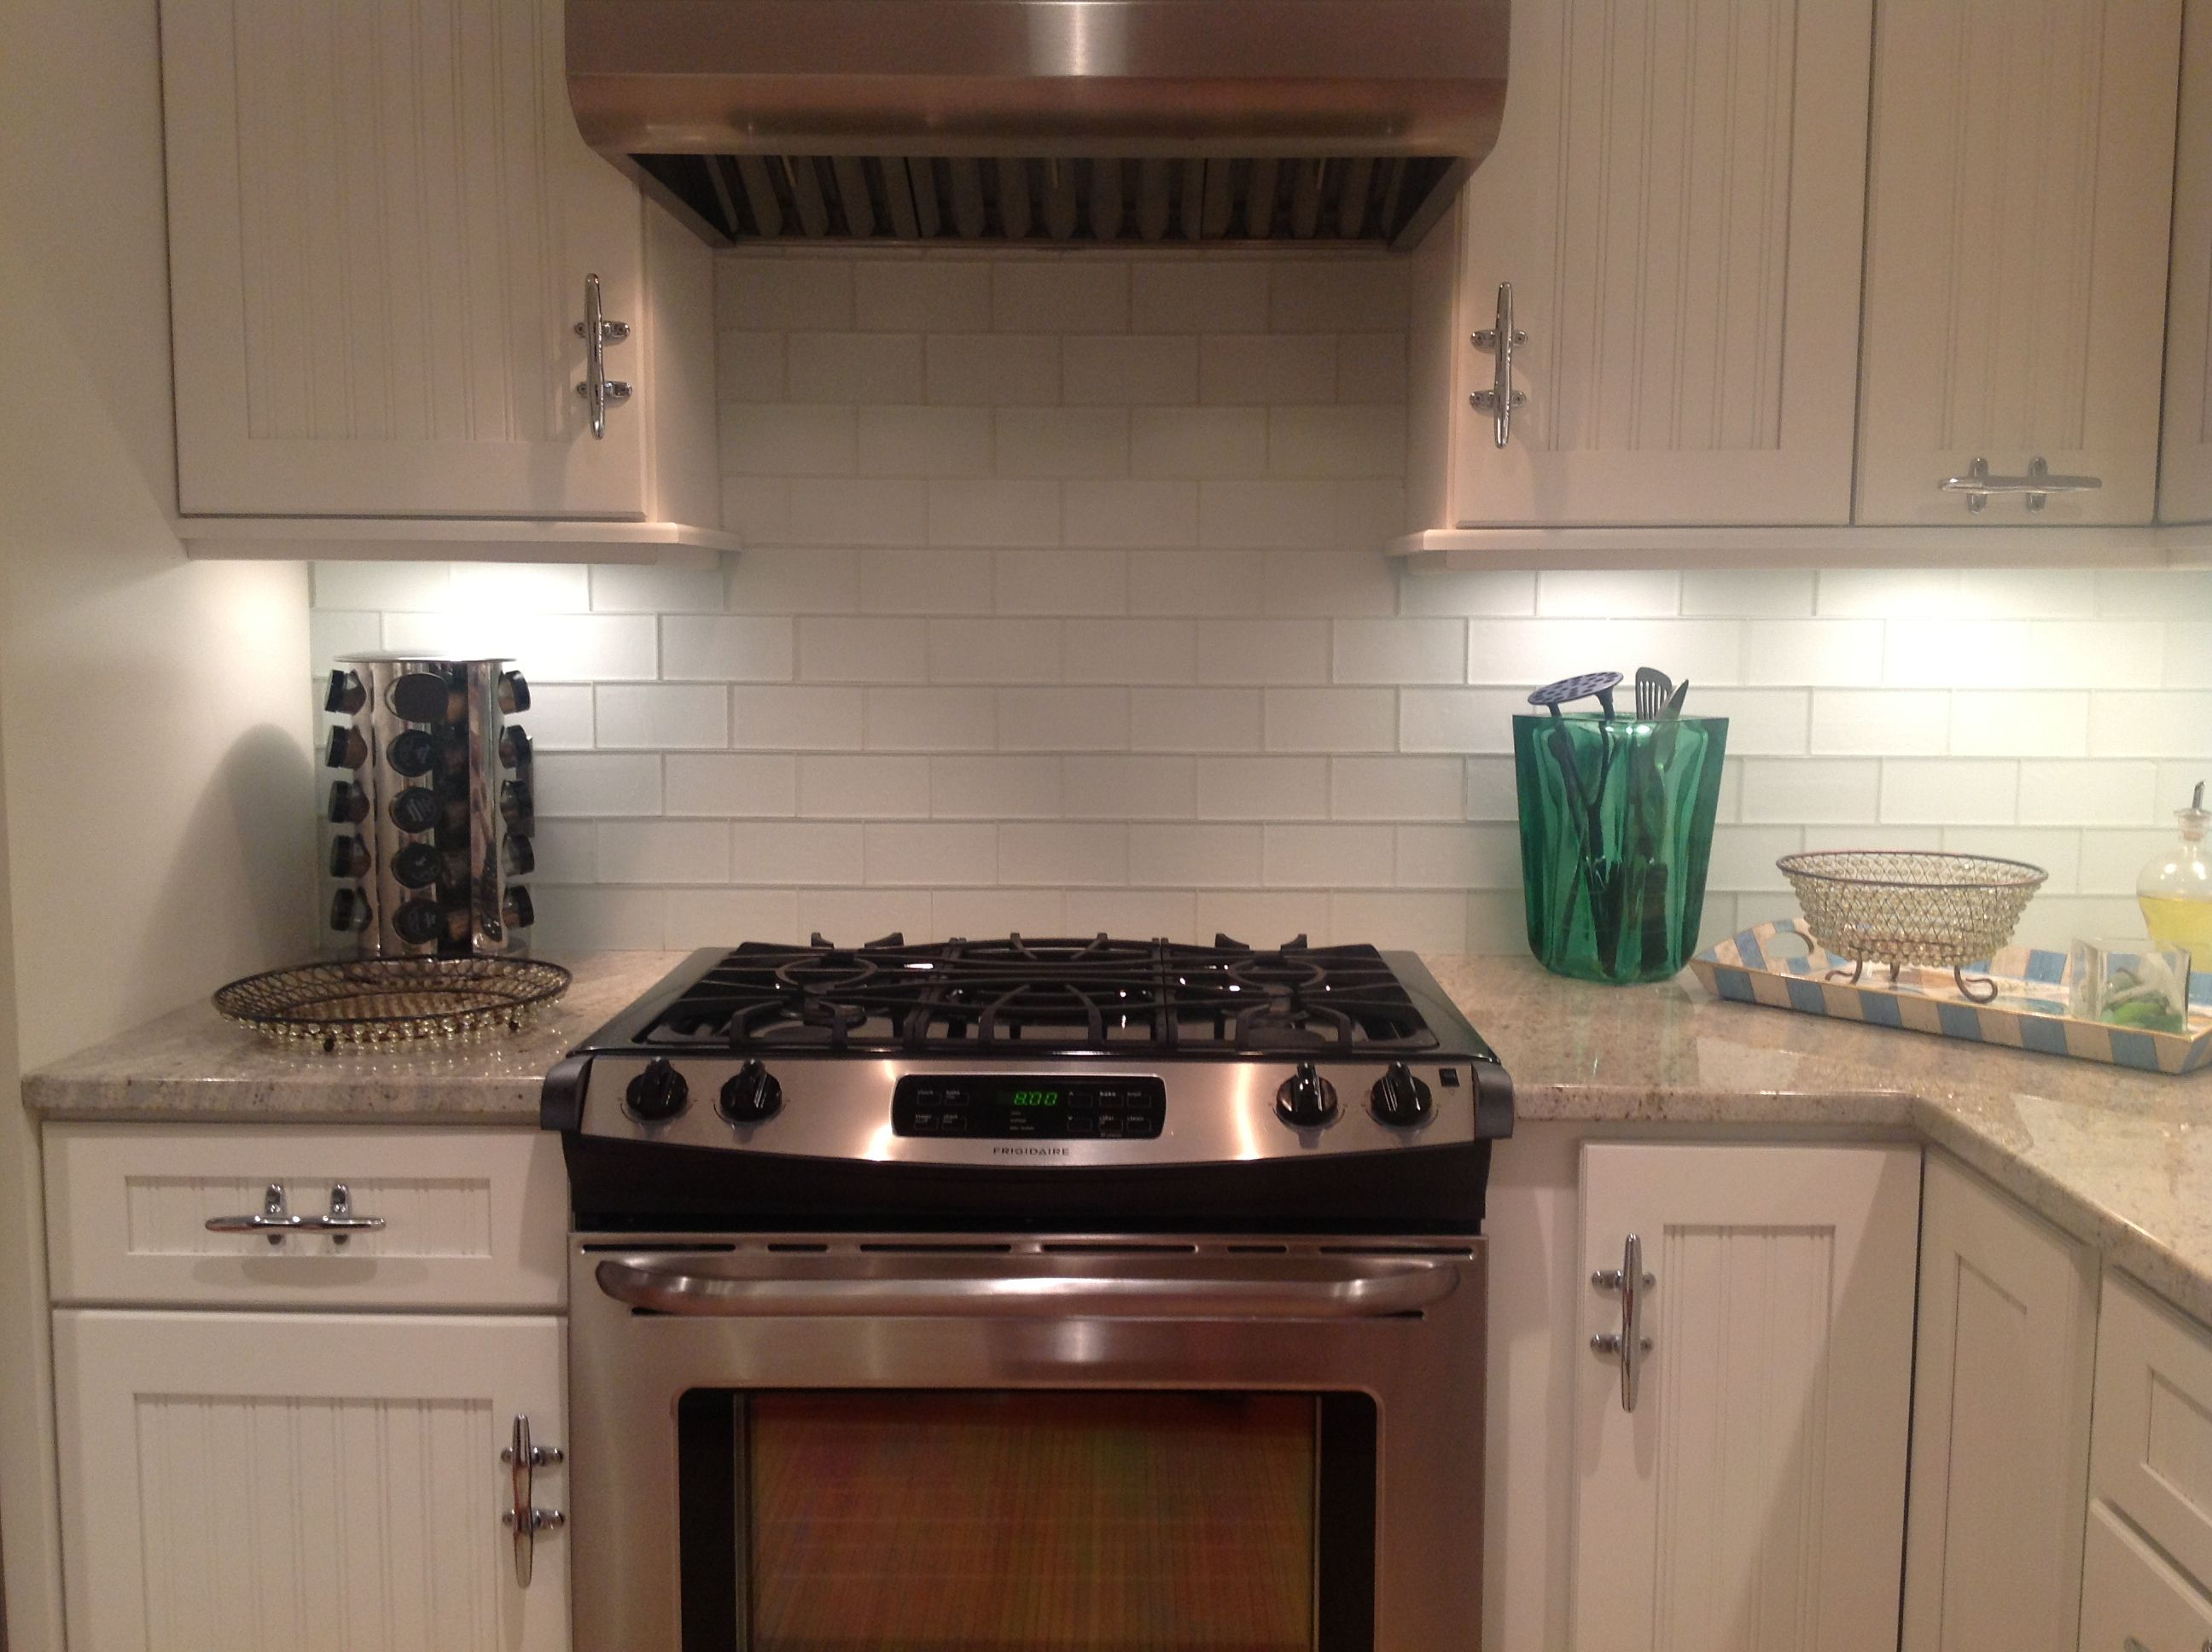 better good contrast with the grey granite and white cabinets frosted white glass subway - Subway Glass Tiles For Kitchen